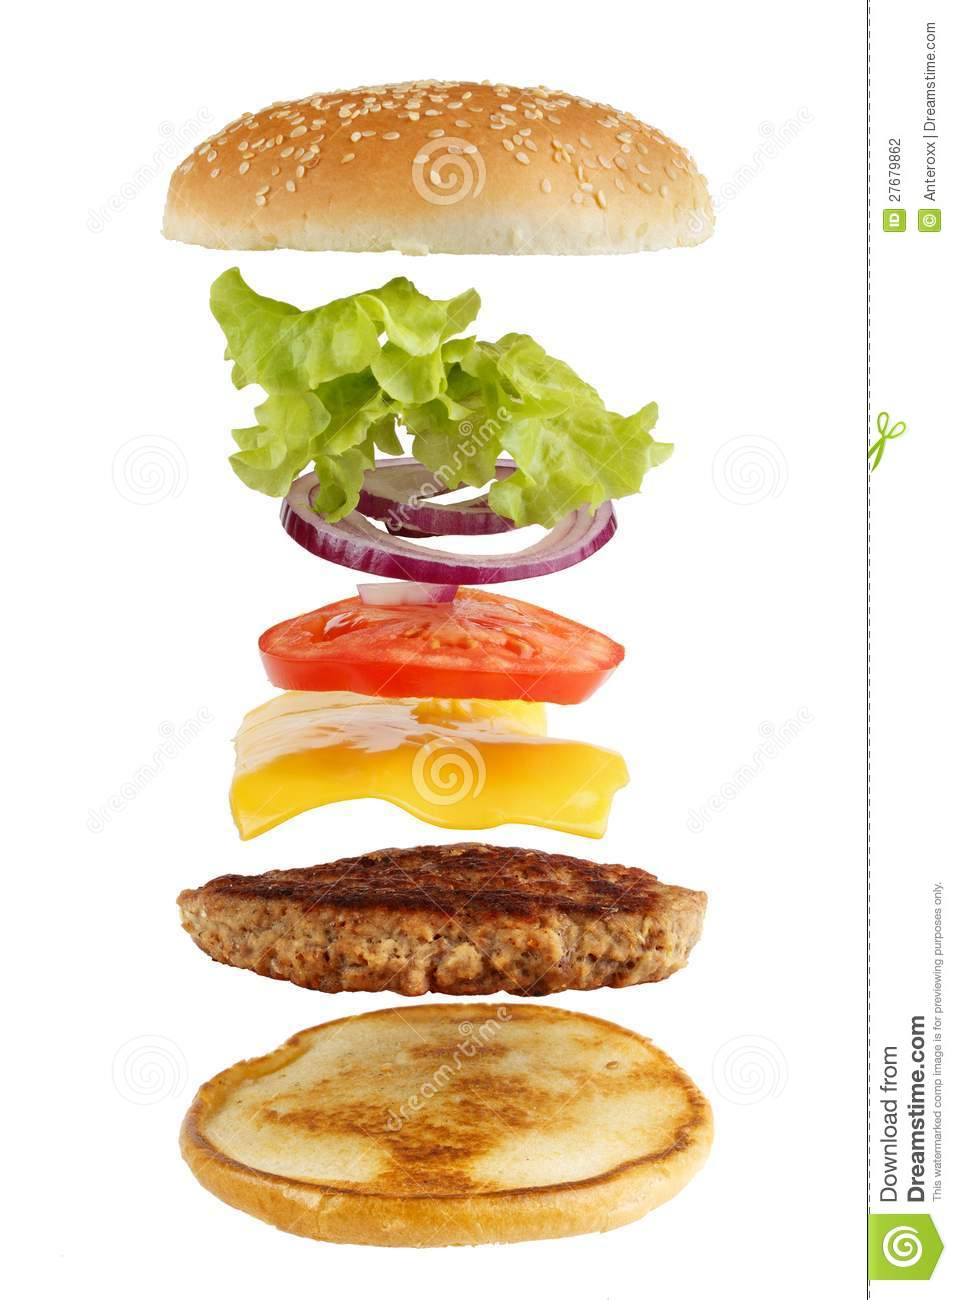 Burger Ingredients Stock Photography - Image: 27679862